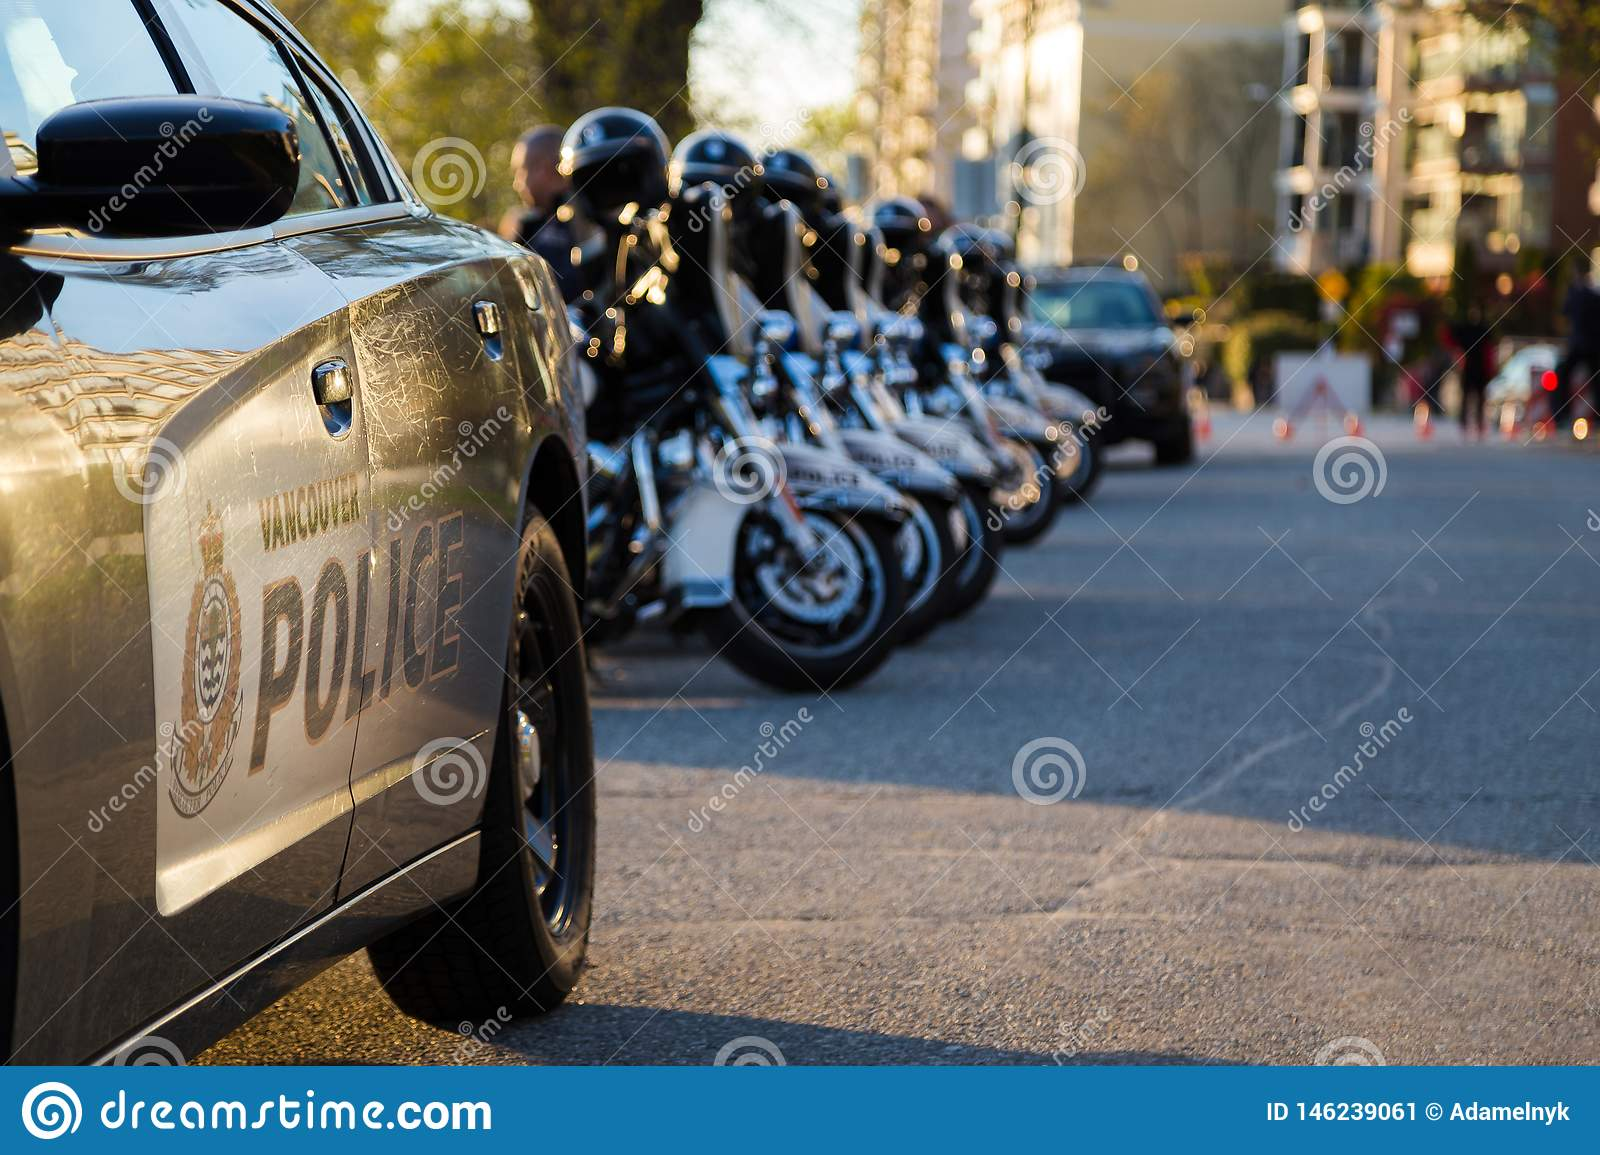 VANCOUVER, BC, CANADA - APR 20, 2019: VPD Motorcycles And